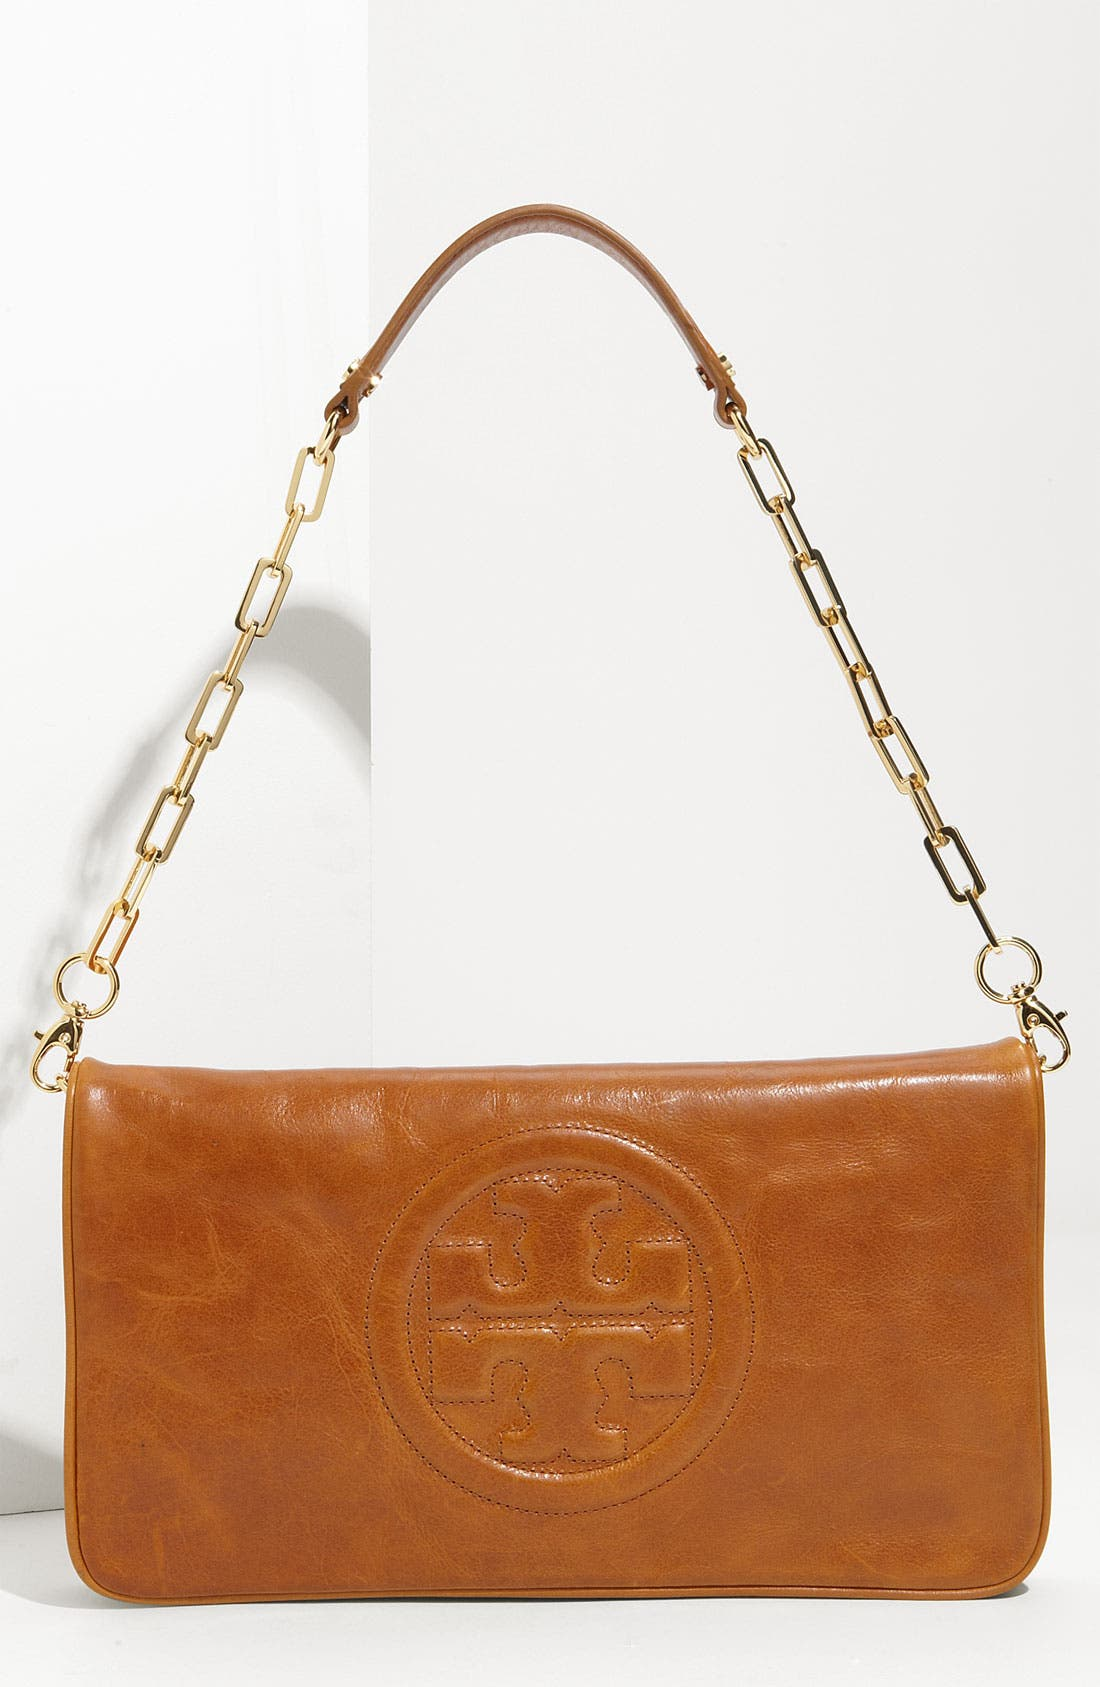 Alternate Image 1 Selected - Tory Burch 'Reva Bombé' Clutch